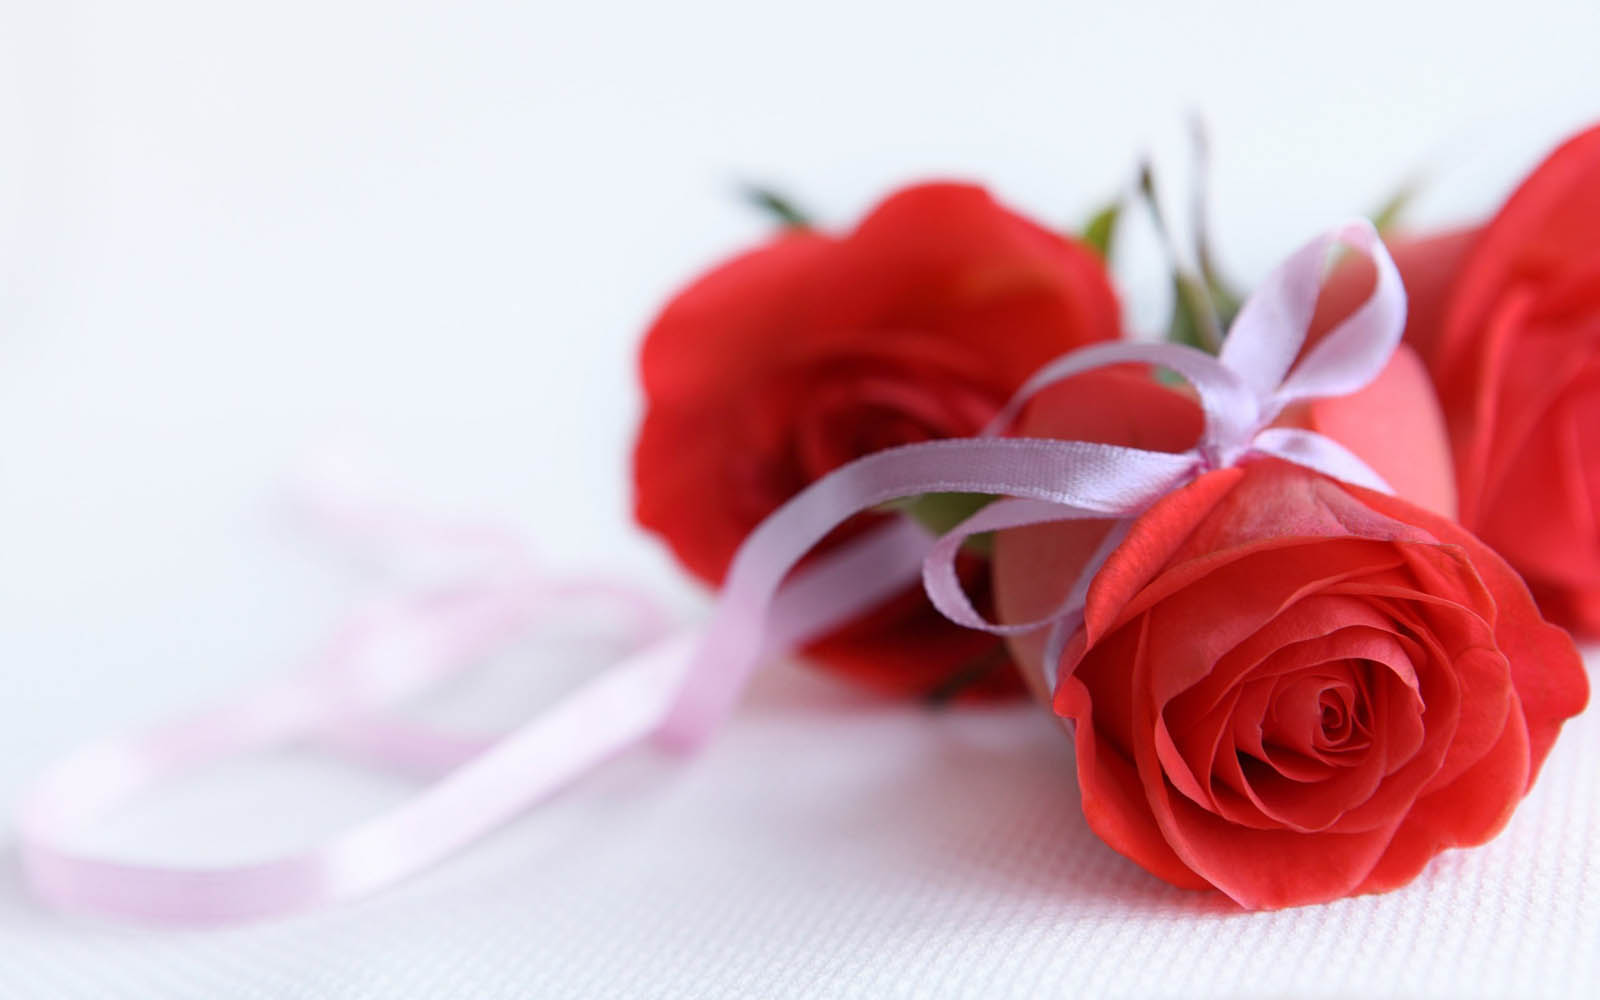 Tag Red Rose Wallpapers Images Photos Pictures and Backgrounds for 1600x1000